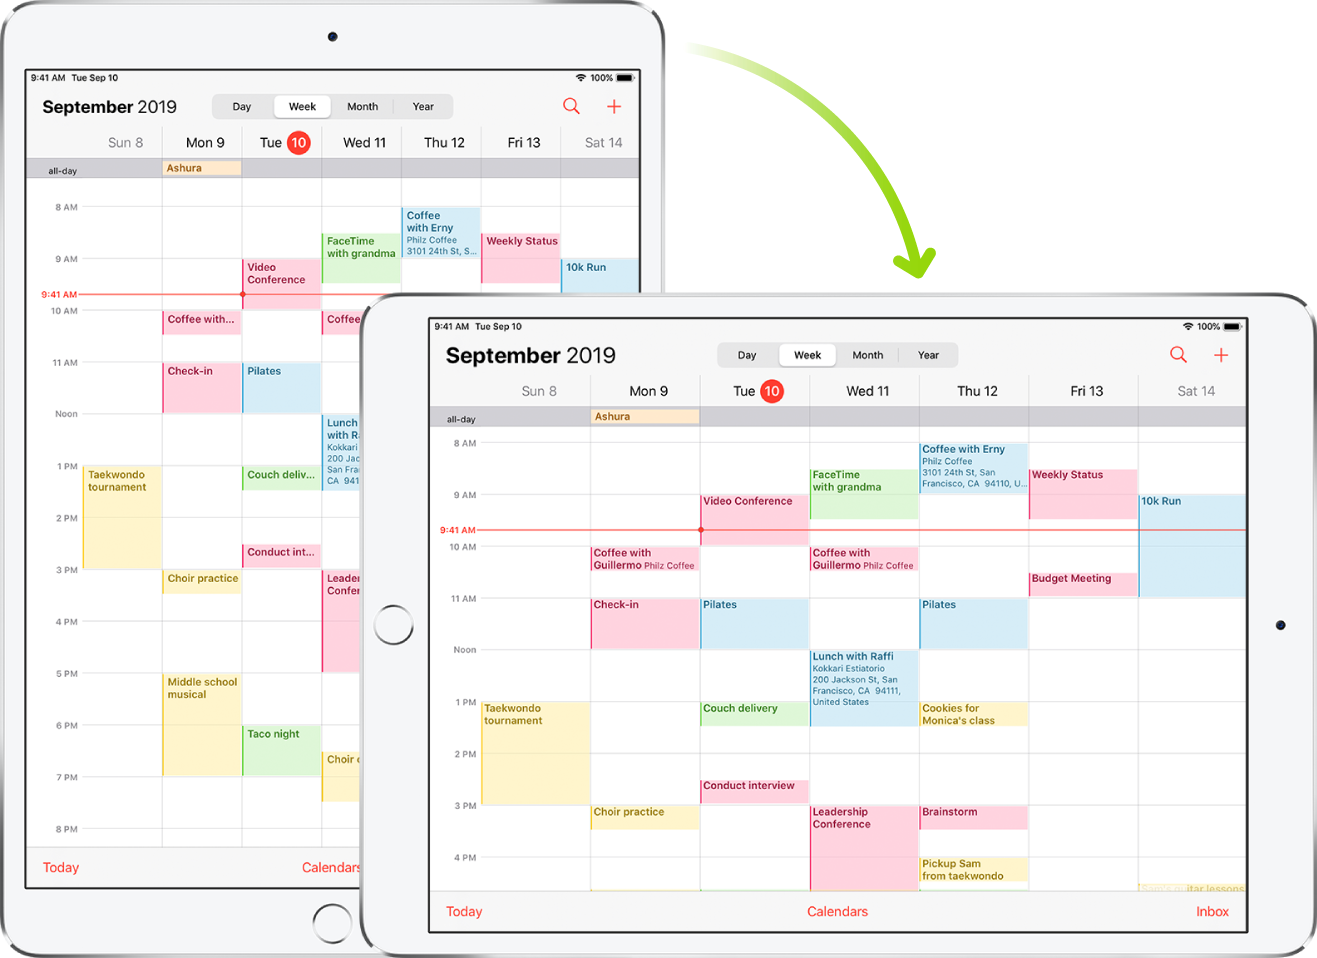 In the background, iPad displays a Calendar screen in portrait orientation; in the foreground, iPad is rotated and shows the Calendar screen in landscape orientation.